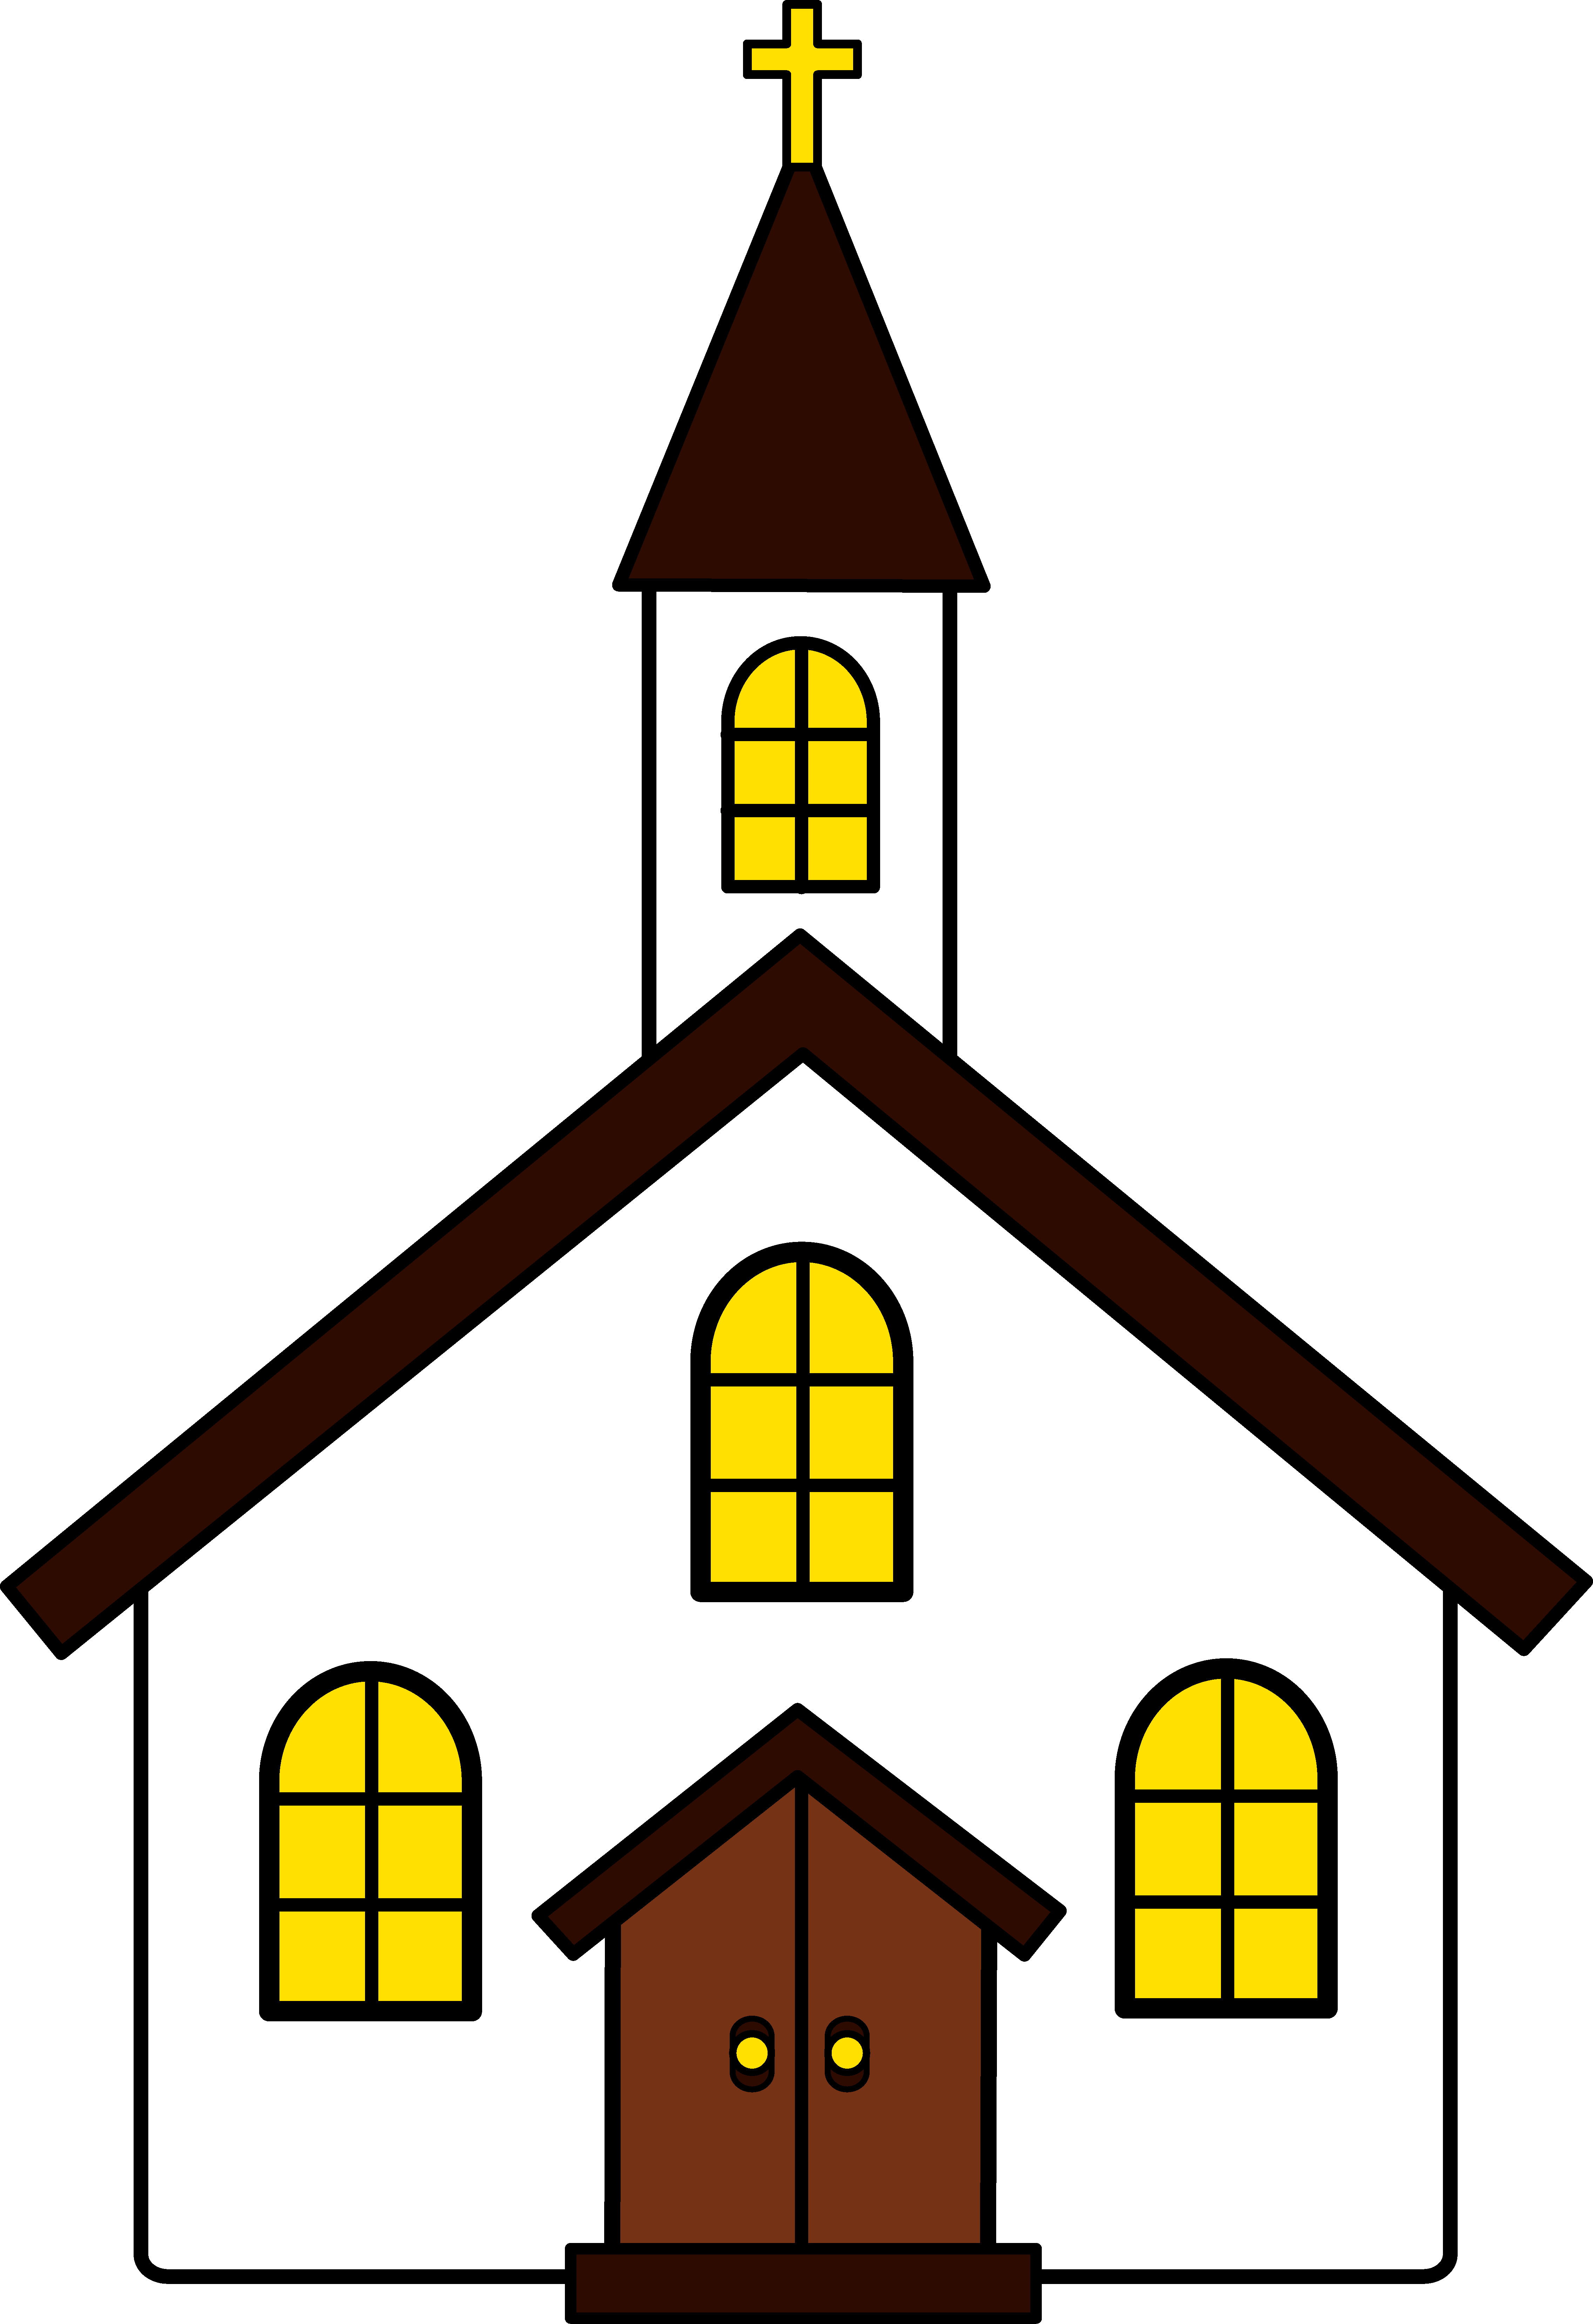 free church clipart at getdrawings com free for personal use free rh getdrawings com free church clipart black and white free church clipart downloads